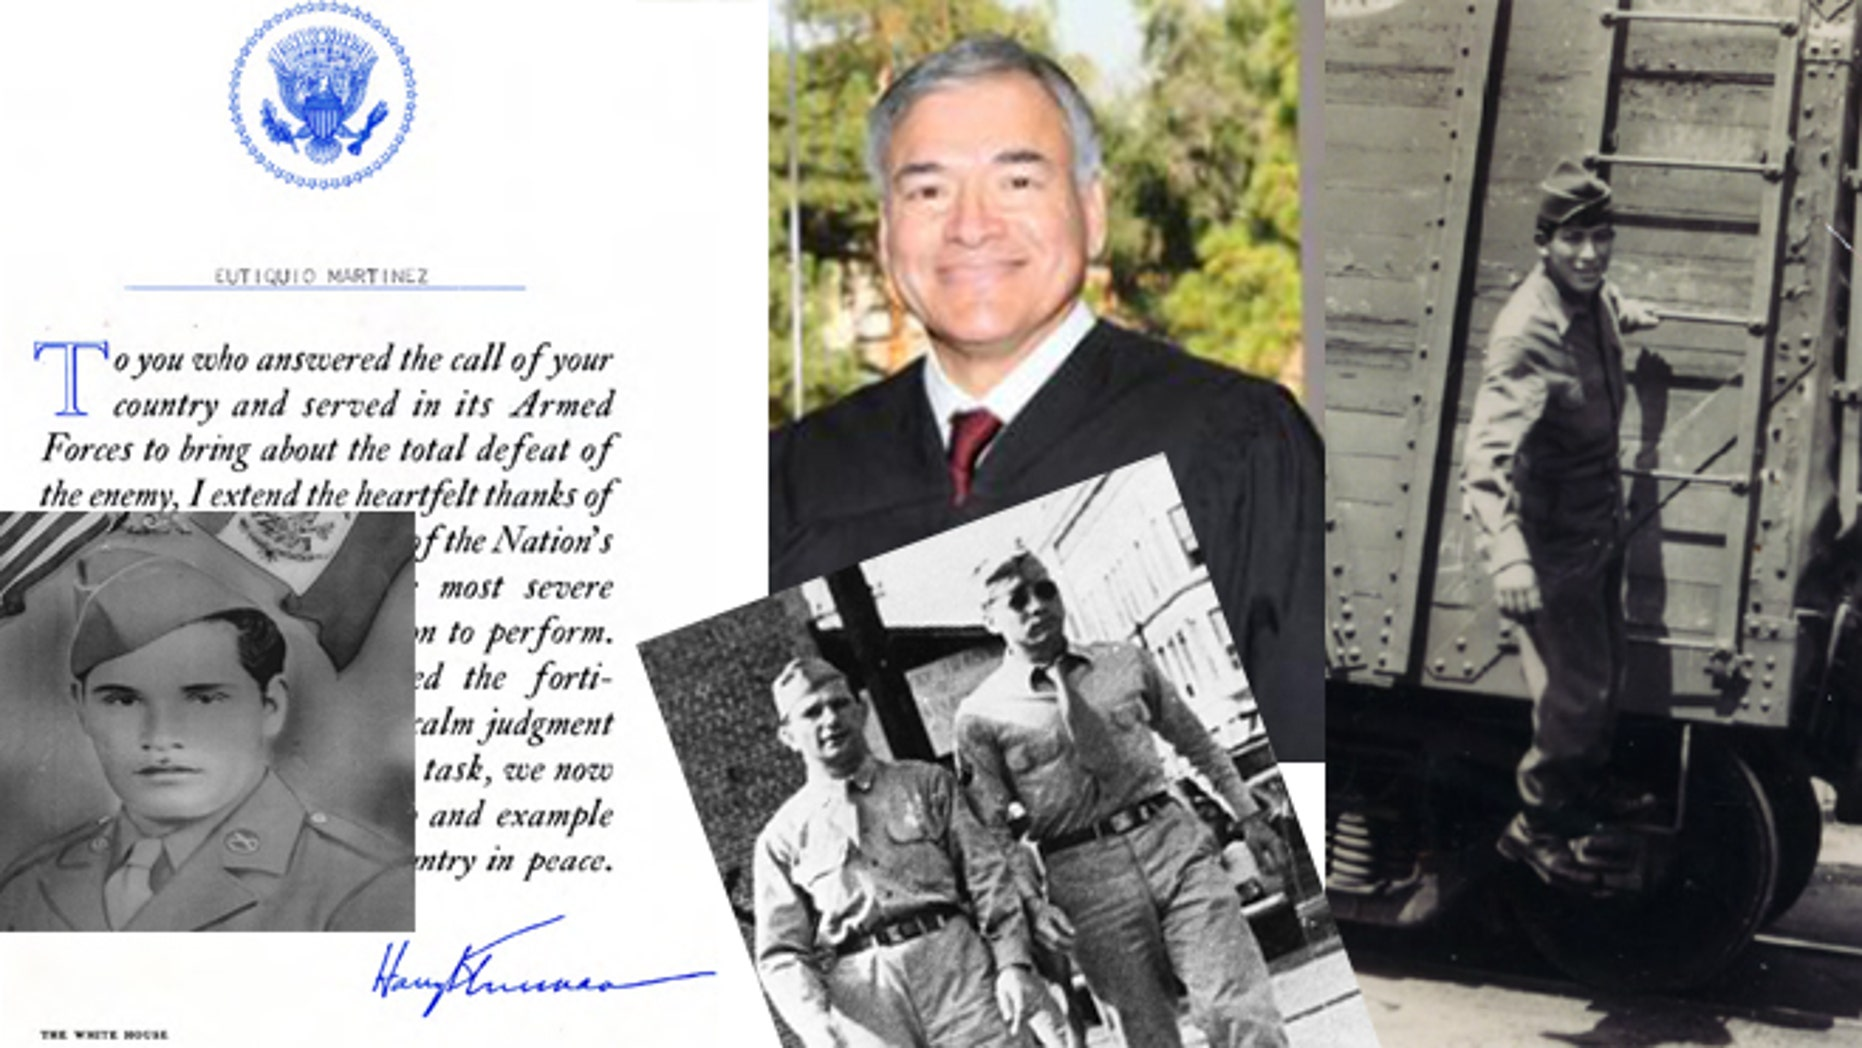 Judge Frederick Aguirre (center) surrounded by, clockwise from right, his uncle Richard Aguirre as a P.F.C.; his father Alfred Aguirre with Ruben Abraham in 1945; his father-in-law, Eutiquio Martínez, along with a letter to Martínez from the White House and signed by Harry S. Truman. (Photos: Courtesy Orange County Hispanic Bar Association, American Patriots of Latino Heritage)